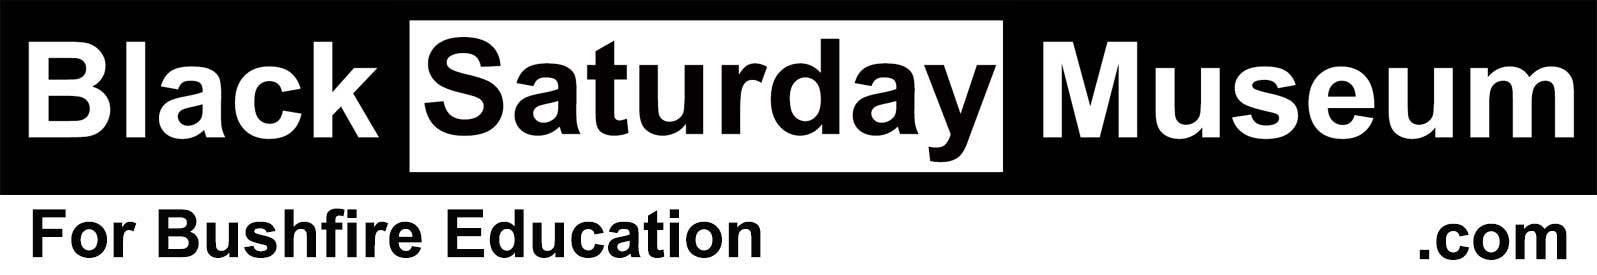 Black Saturday Museum logo